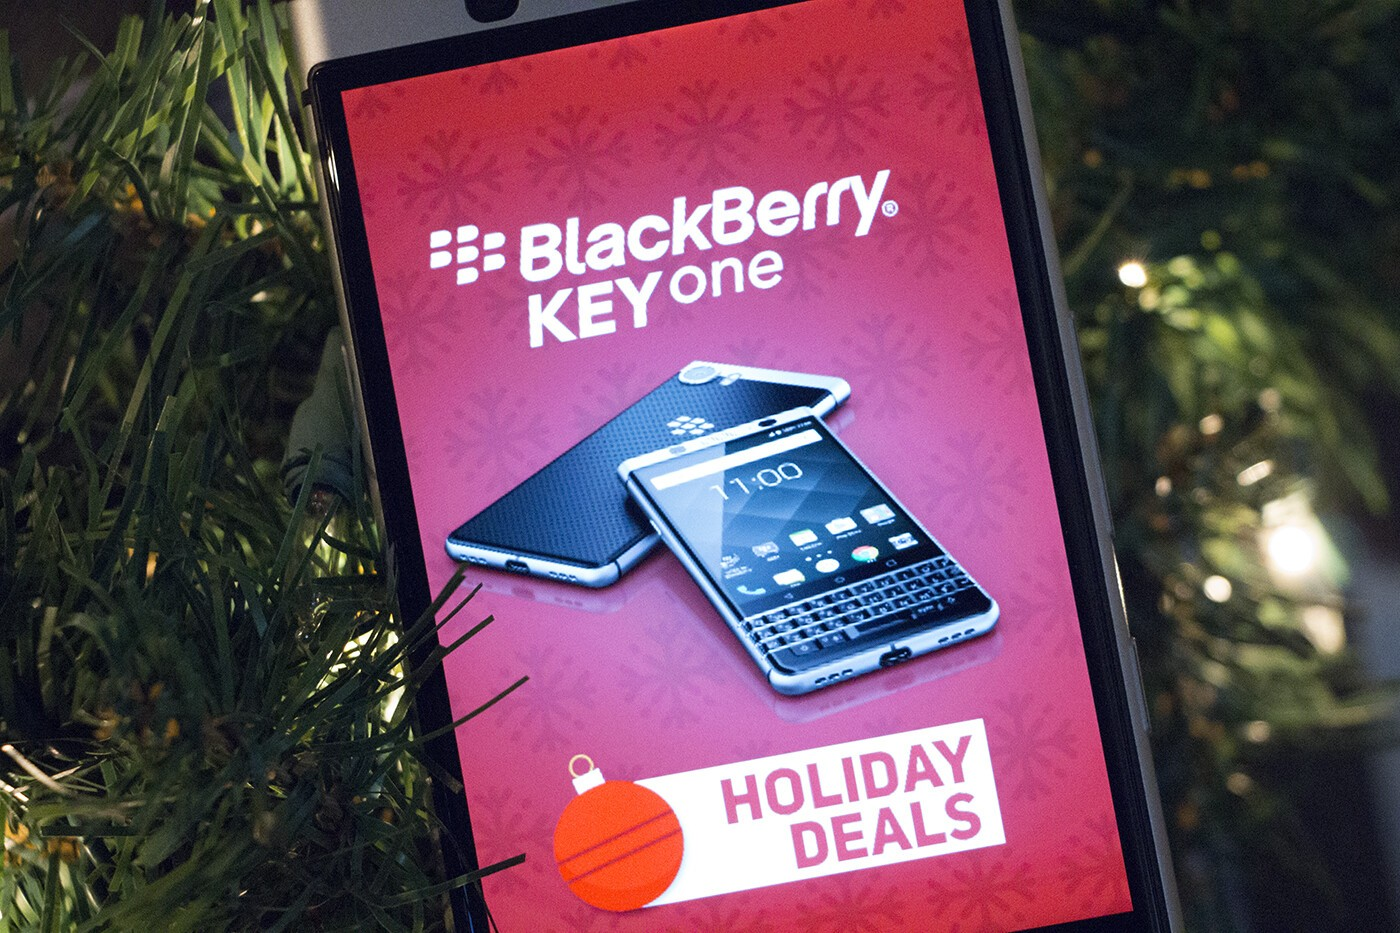 BlackBerry KEYone Holiday Deals